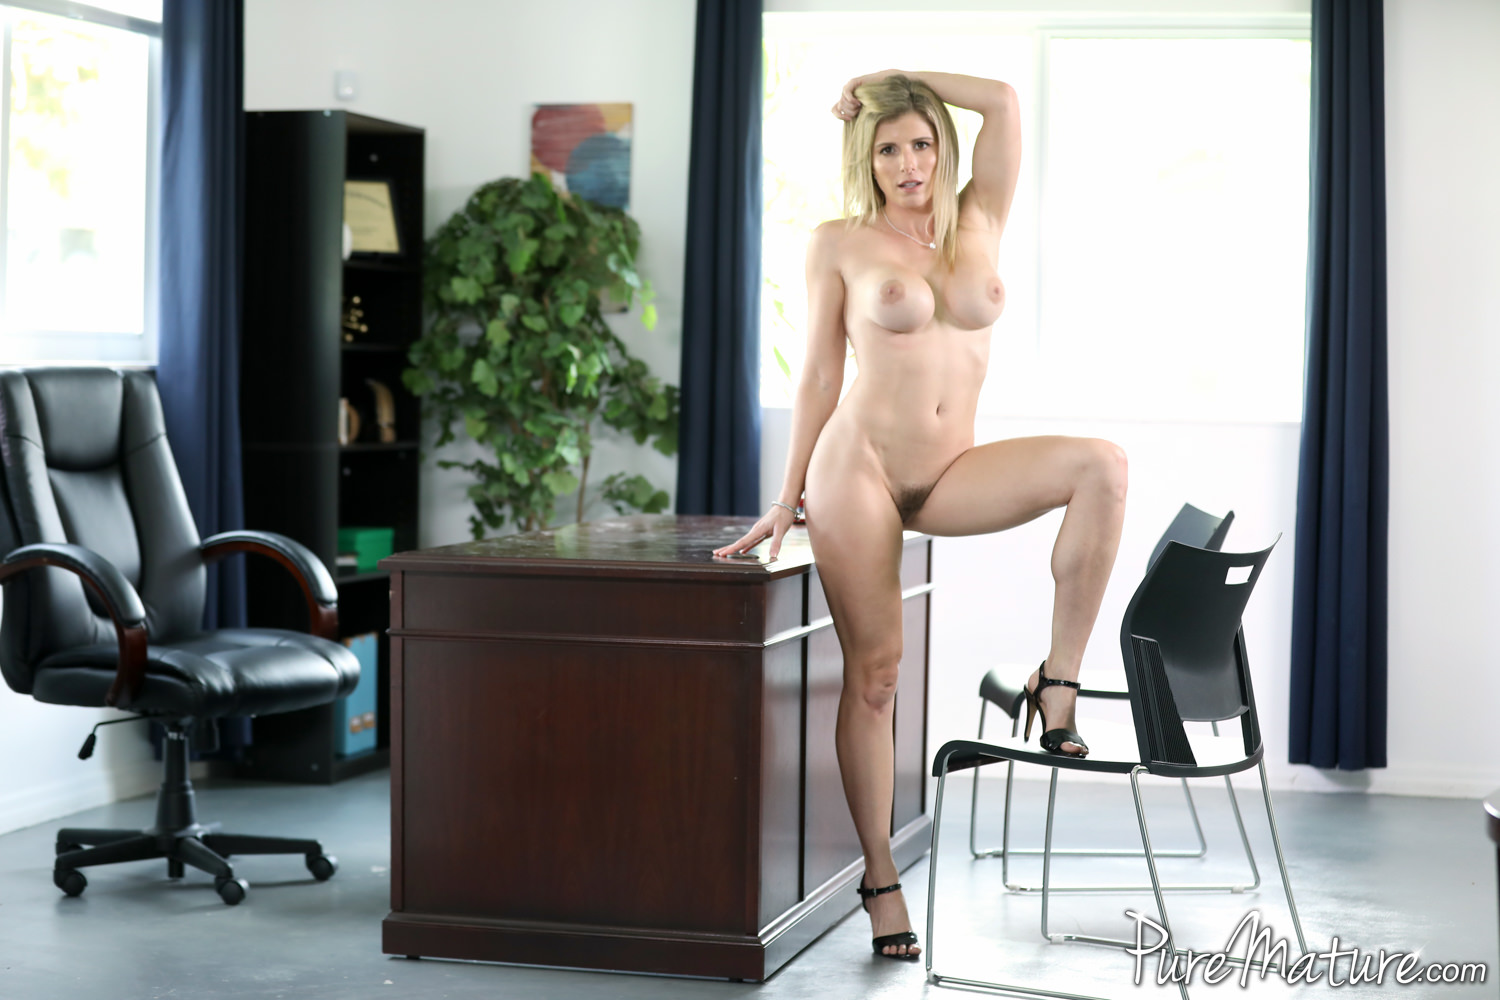 Cory Chase Dirty Work - Pure Mature Tube Videos And Pictures-6099